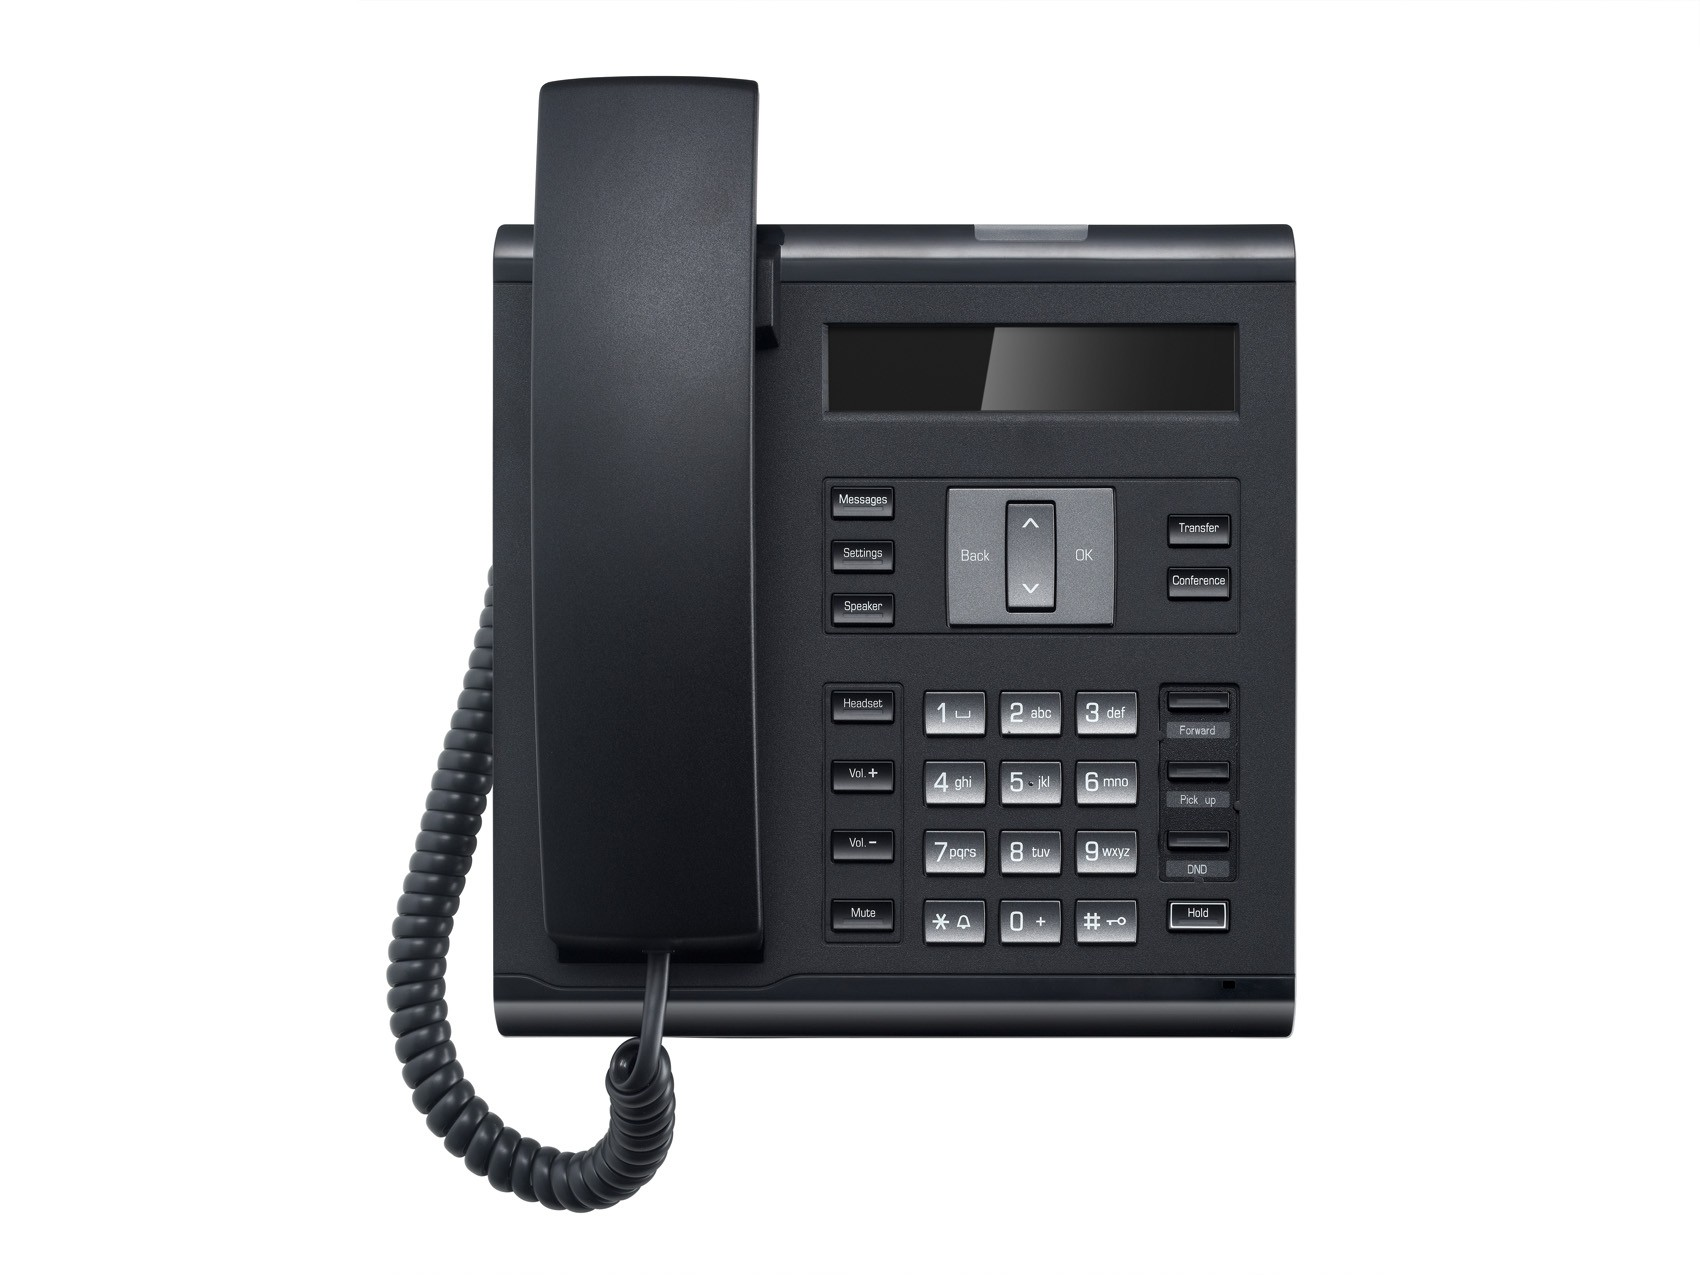 avaya phone deskphone systems ip business office desk